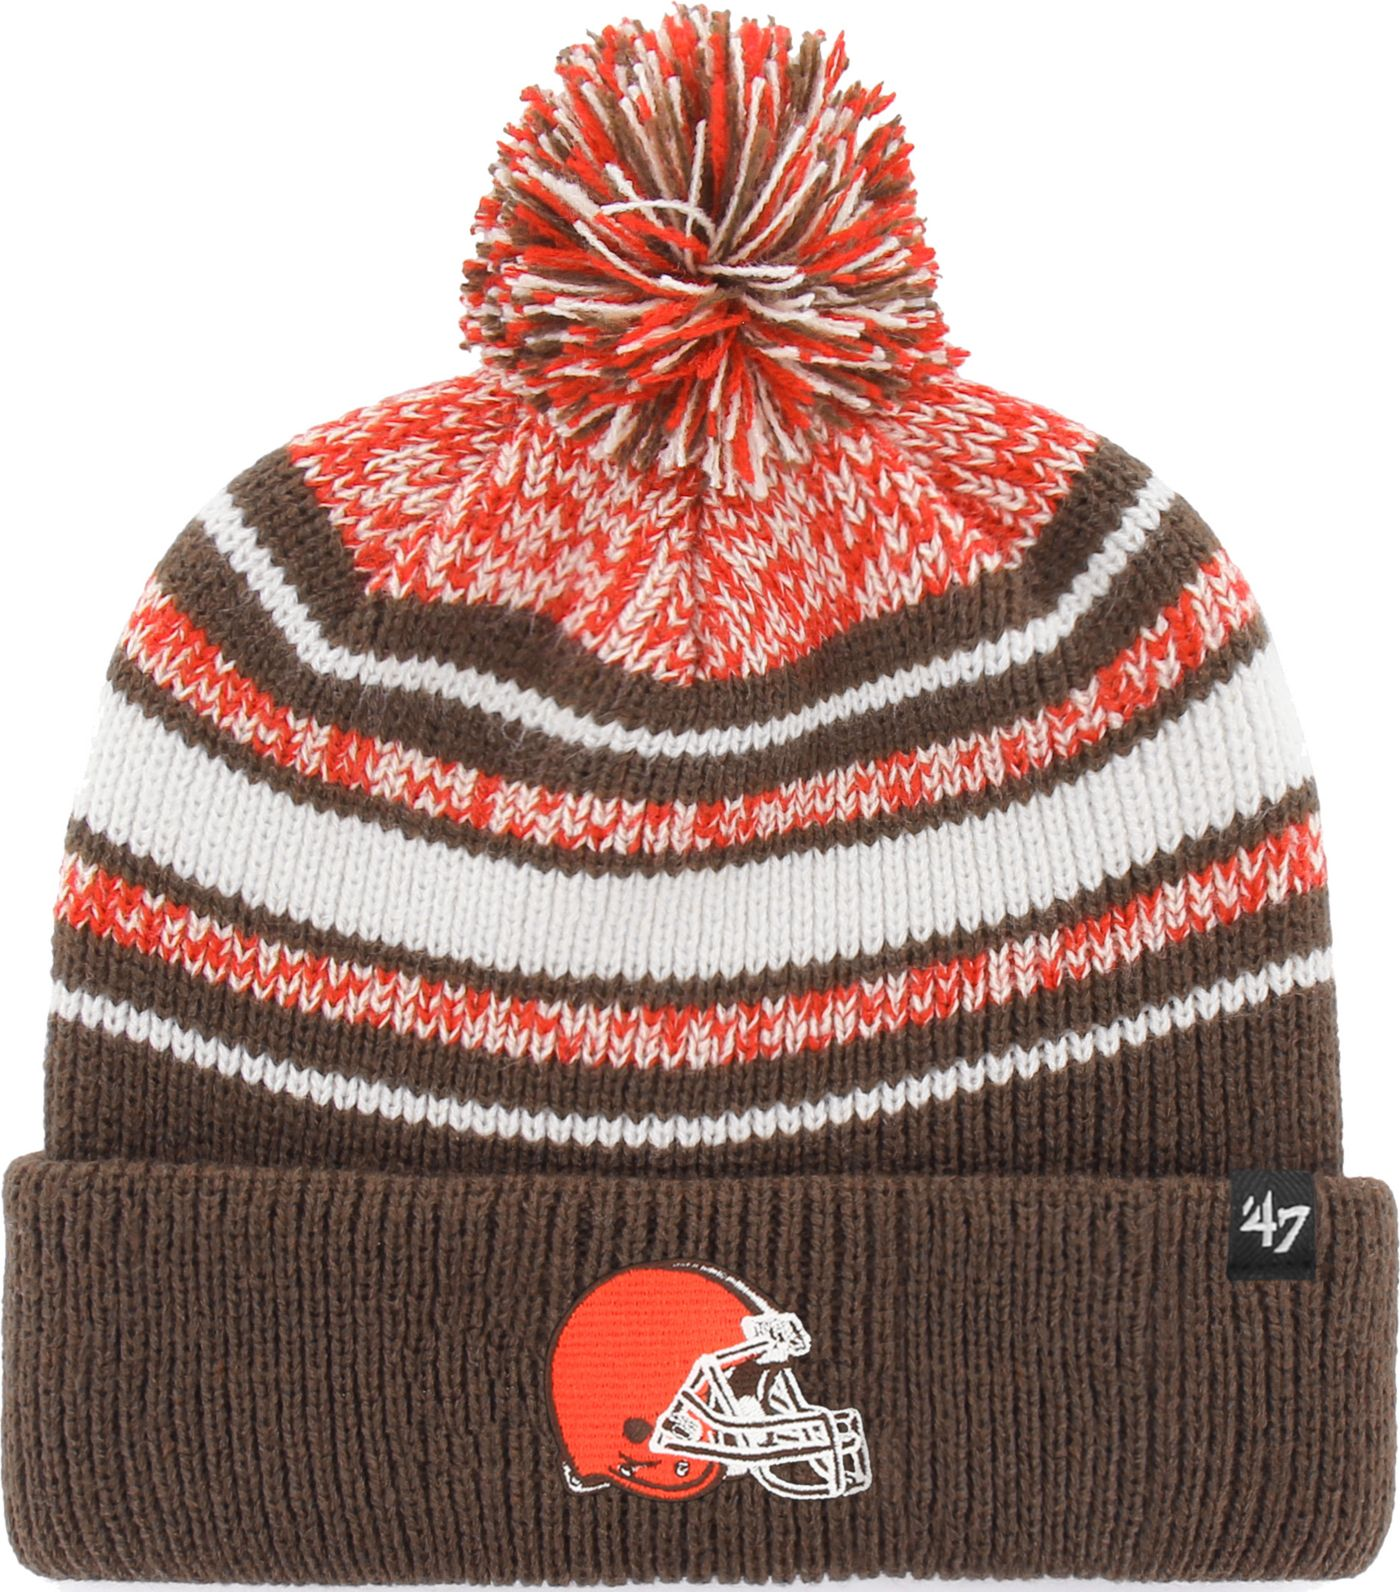 '47 Toddler's Cleveland Browns Bubbler Orange Knit